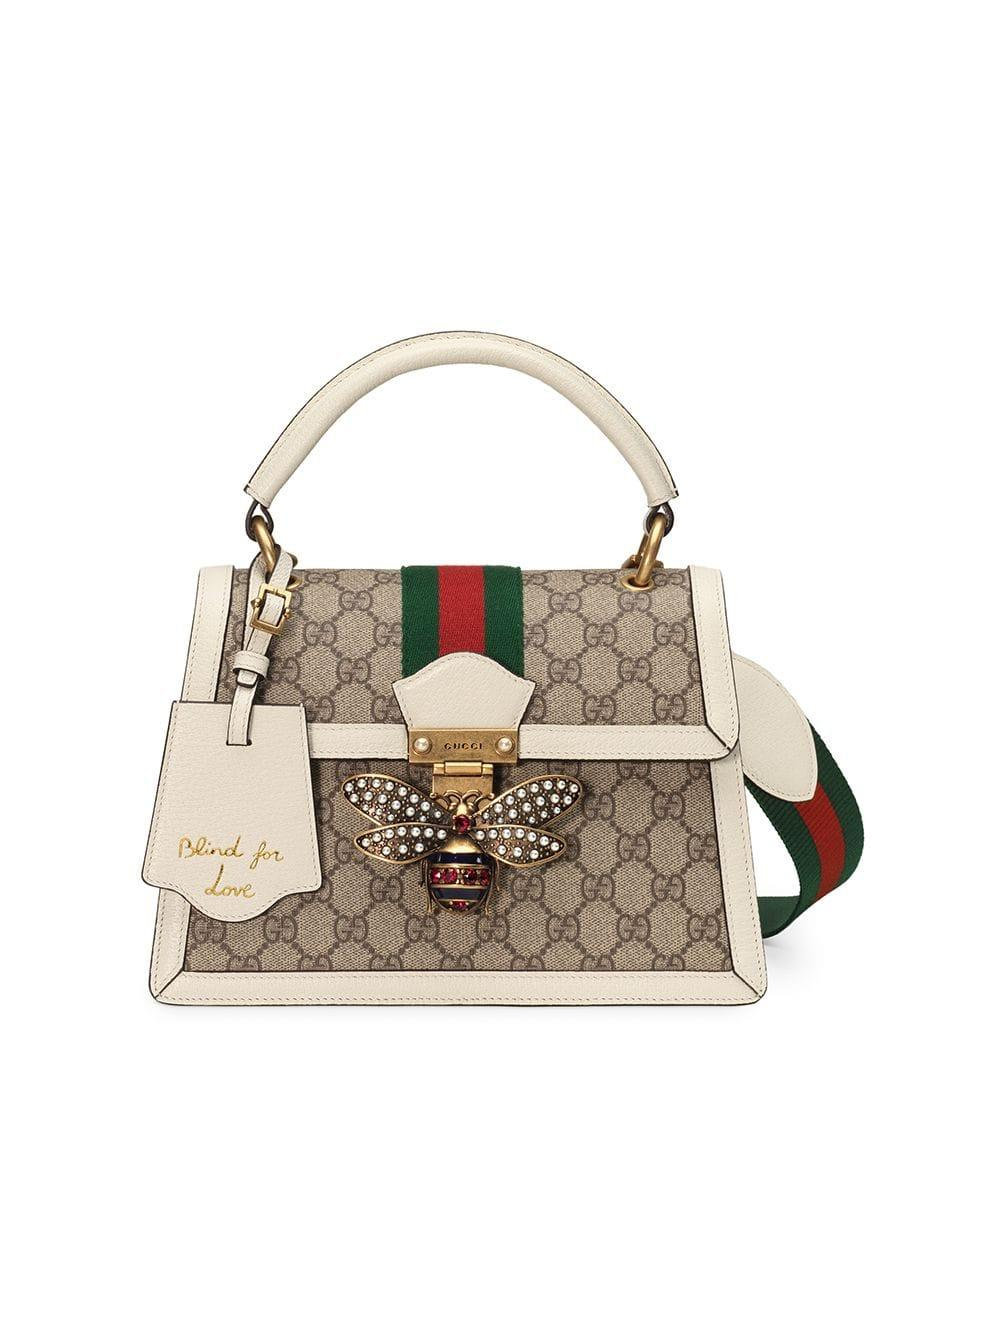 9c51280c7 ... Gucci - Multicolor Queen Margaret Small GG Top Handle Bag - Lyst. Visit  Farfetch. Tap to visit site